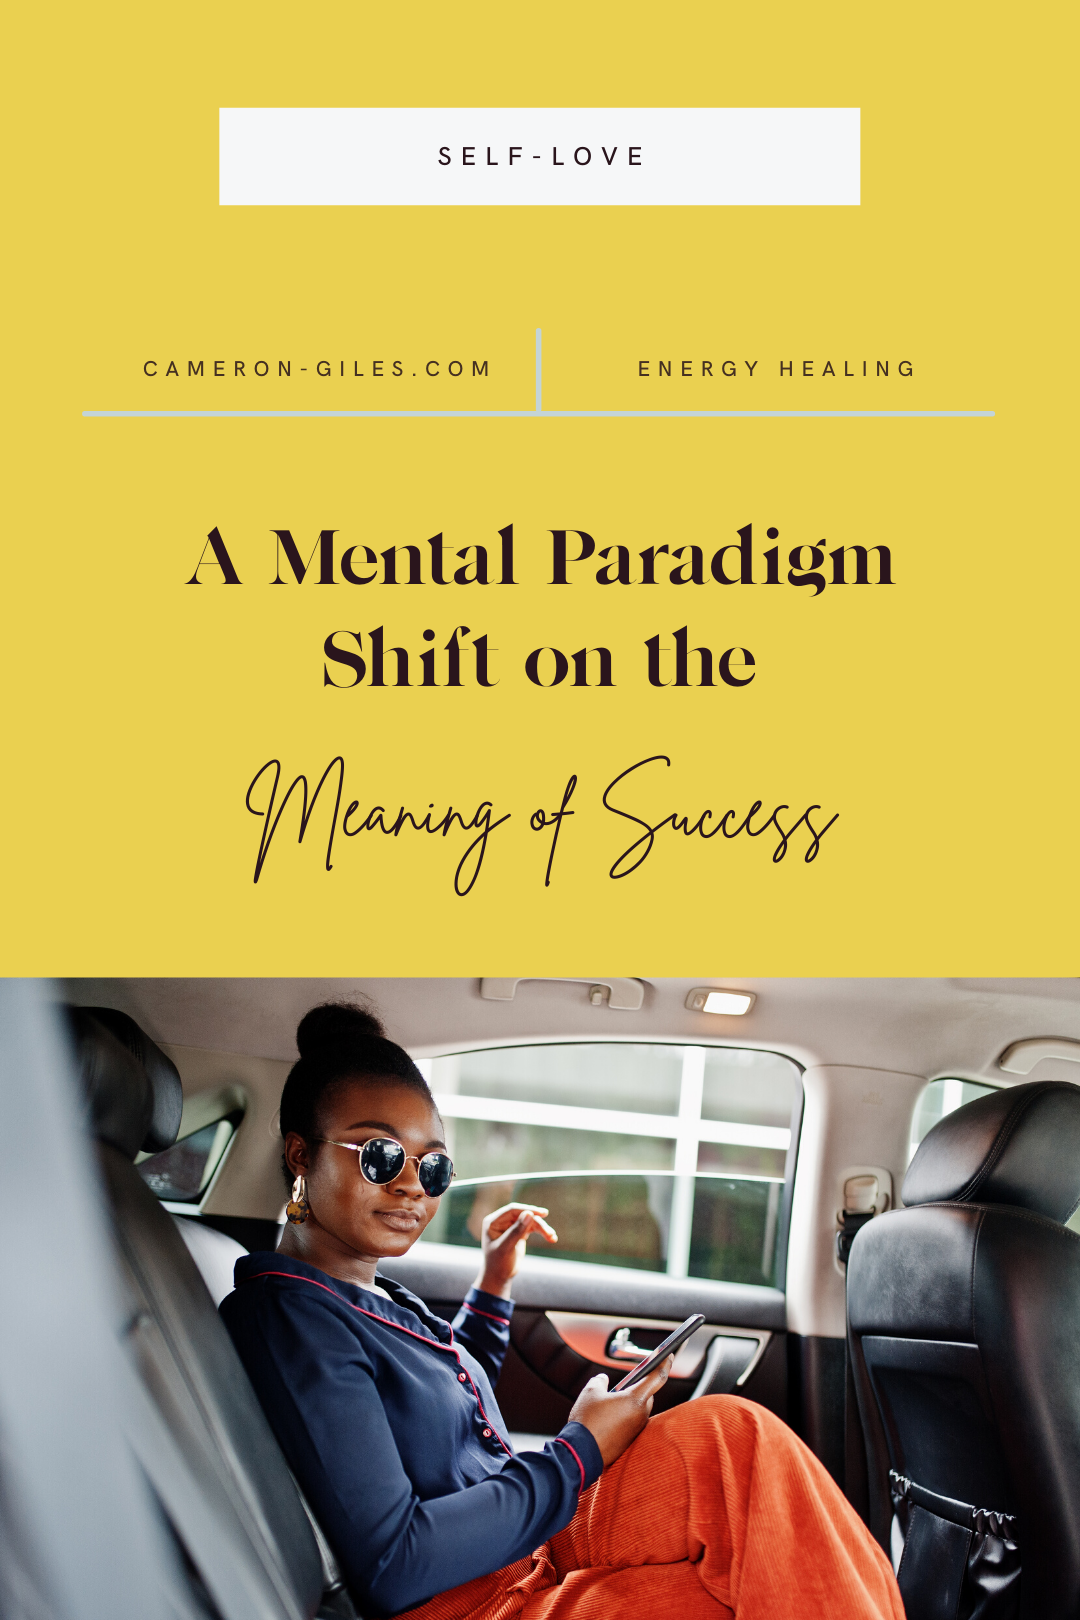 A mental paradigm shift on the meaning of success